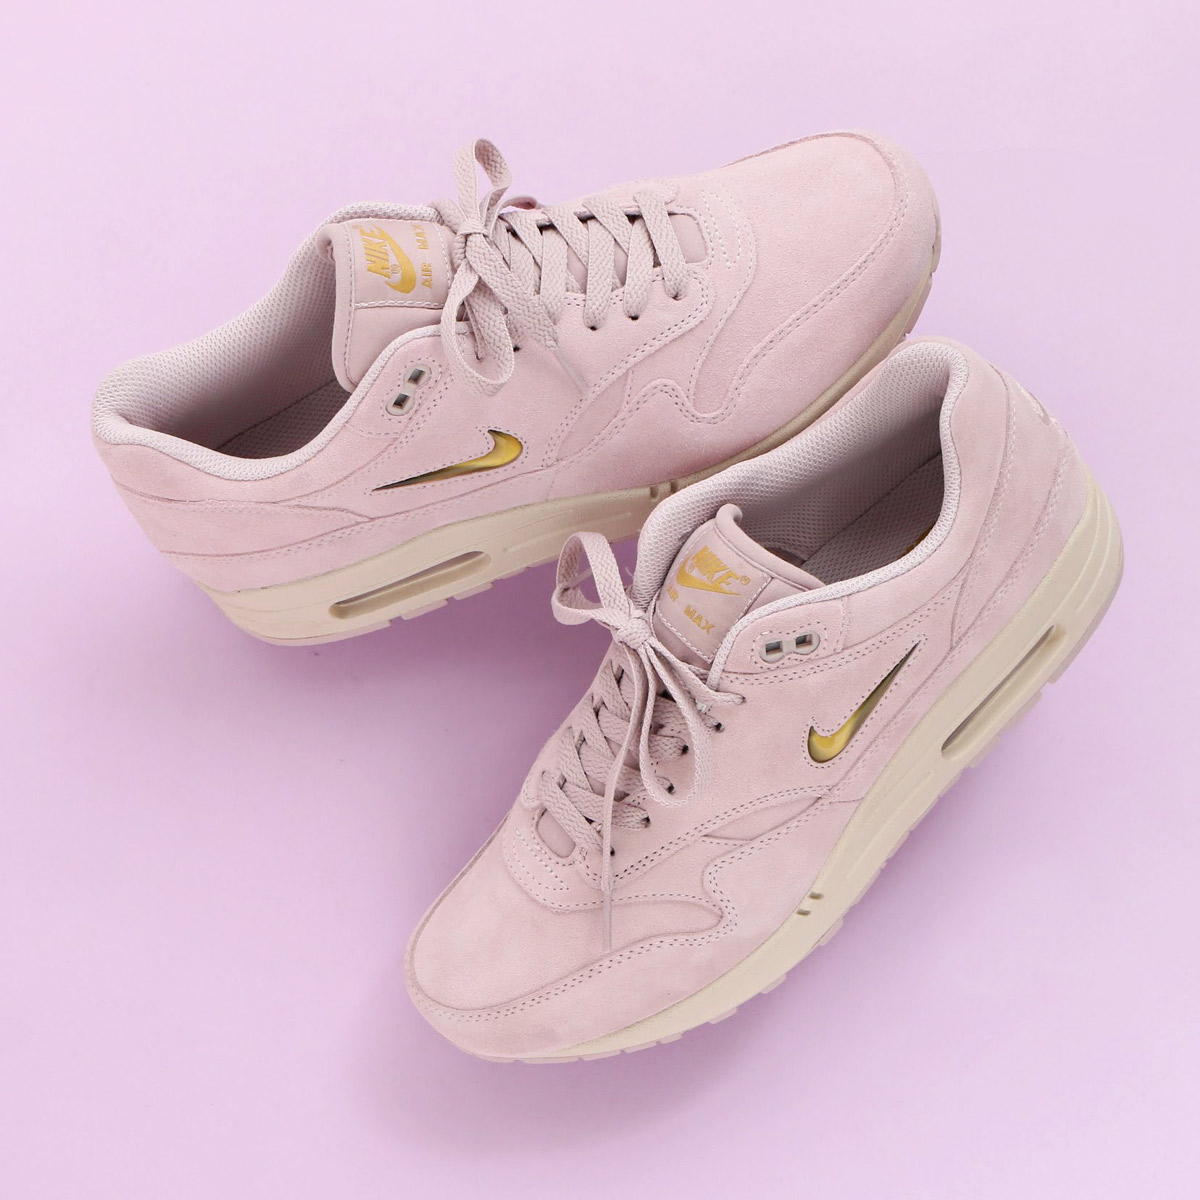 watch e1415 b7ff0 ... ☆ maximum point 10 times that is targeted for all articles! NIKE AIR  MAX 1 PREMIUM SC (Kie Ney AMAX 1 premium SC) (PARTICLE ROSE METALLIC  GOLD-DESERT ...